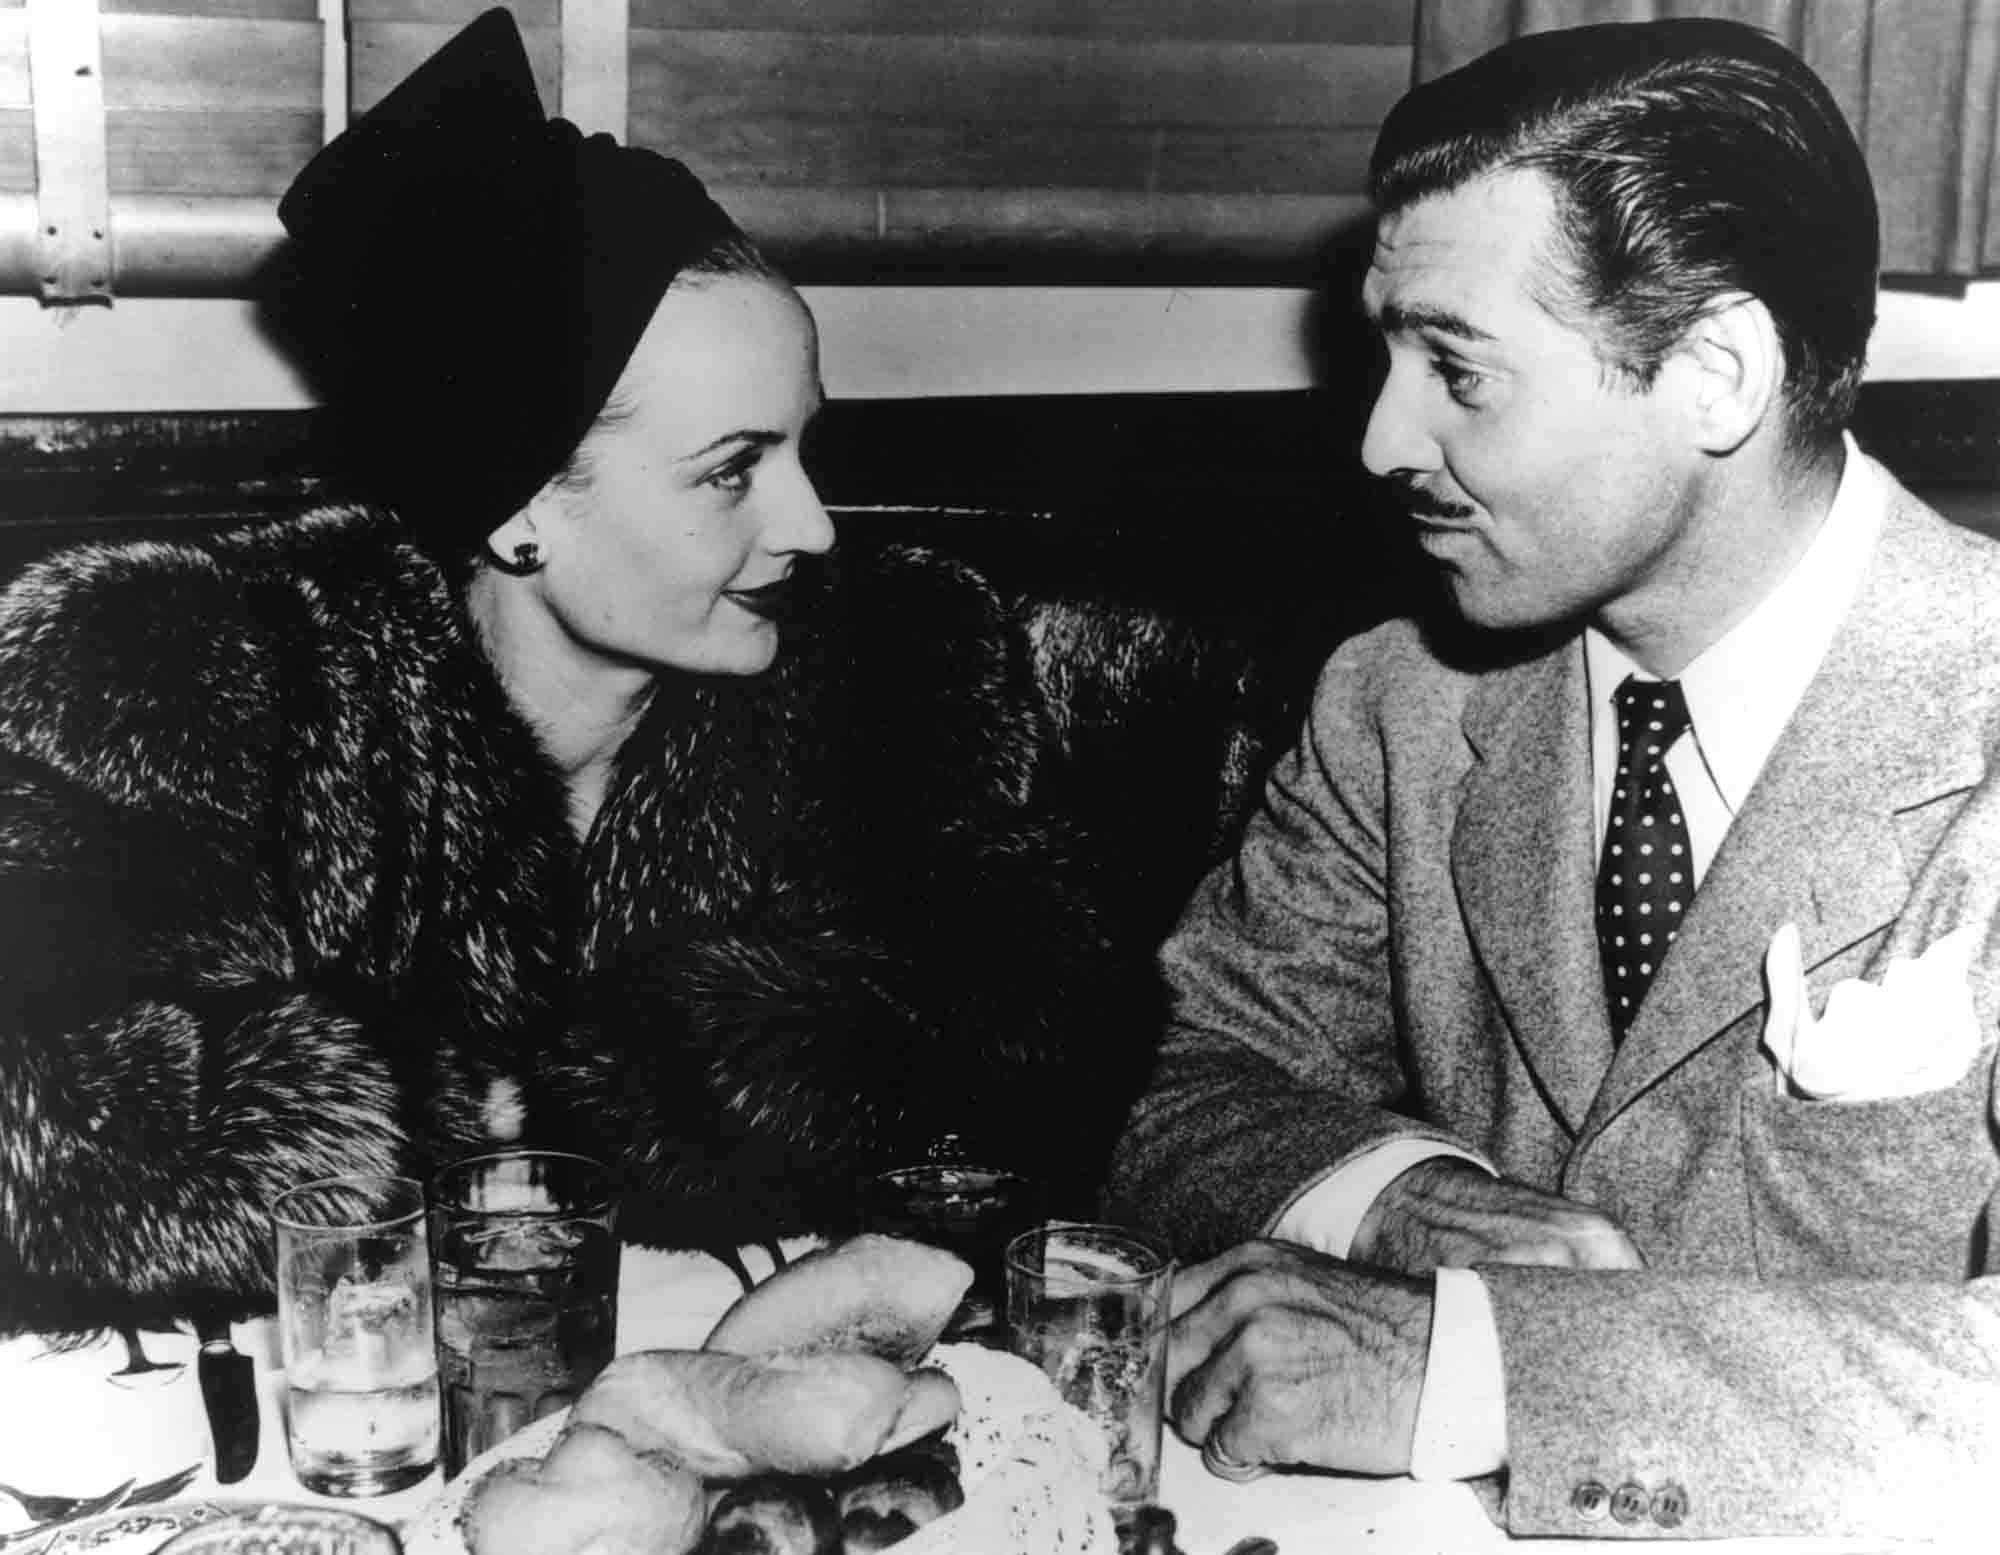 Vintage photo of Clark Gable & Carole Lombard